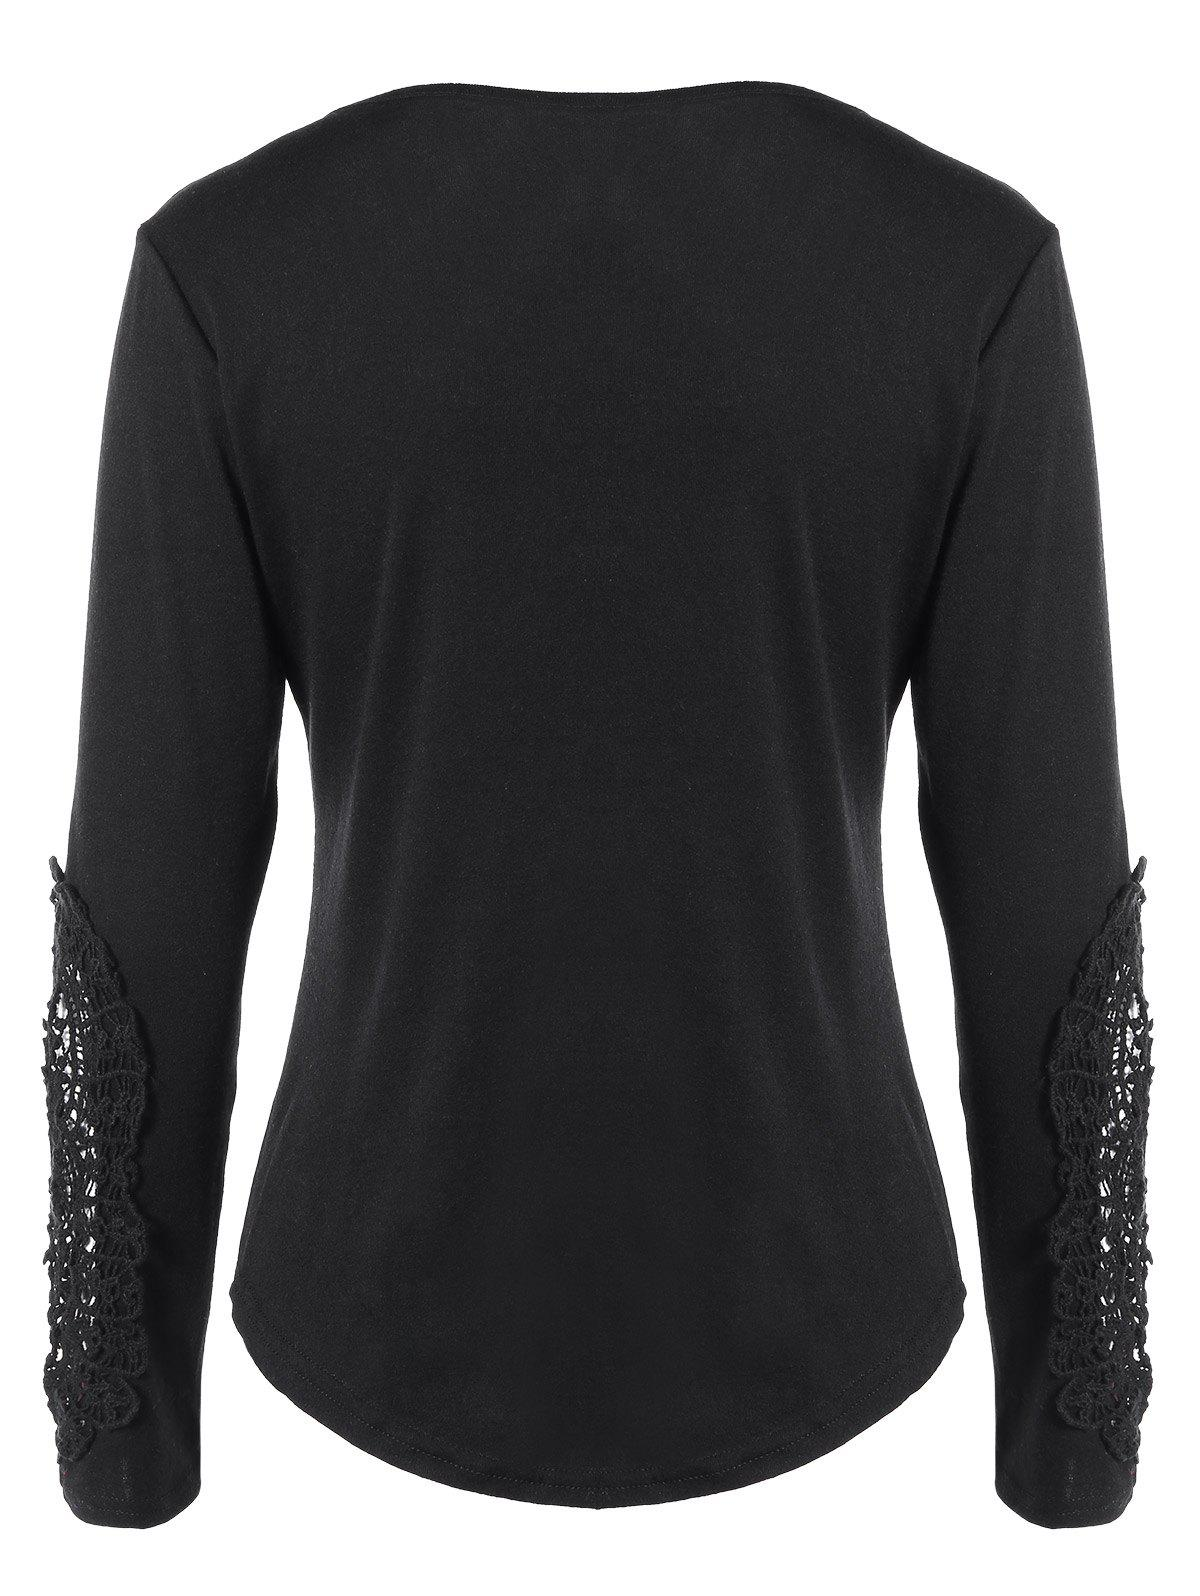 Concise Openwork Lace Buttons T-Shirt - BLACK XL